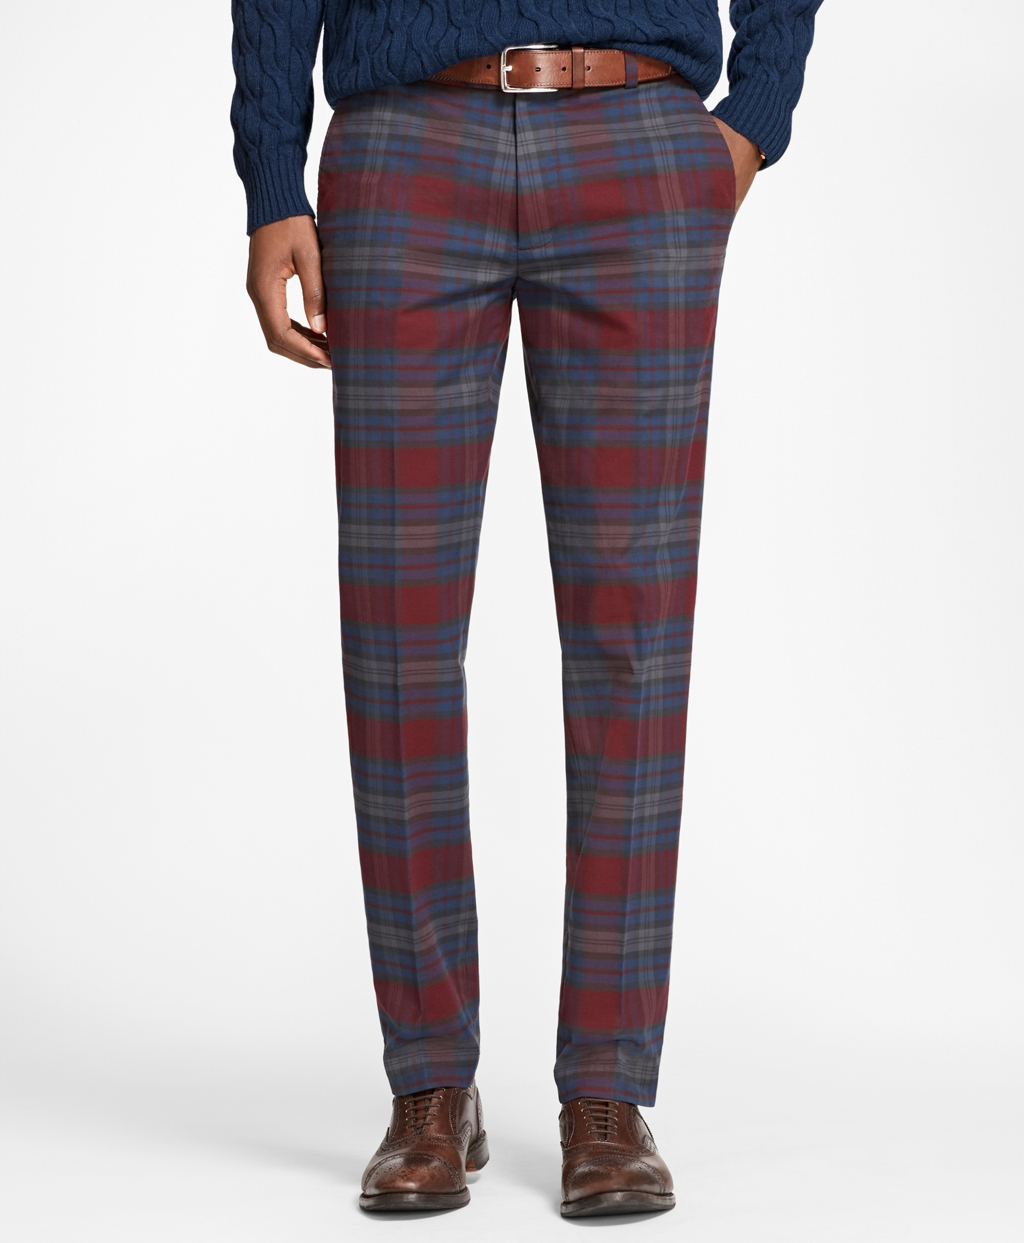 Victorian Men's Pants – Victorian Steampunk Men's Clothing Brooks Brothers Mens Milano Fit Tartan Stretch Pants $128.00 AT vintagedancer.com